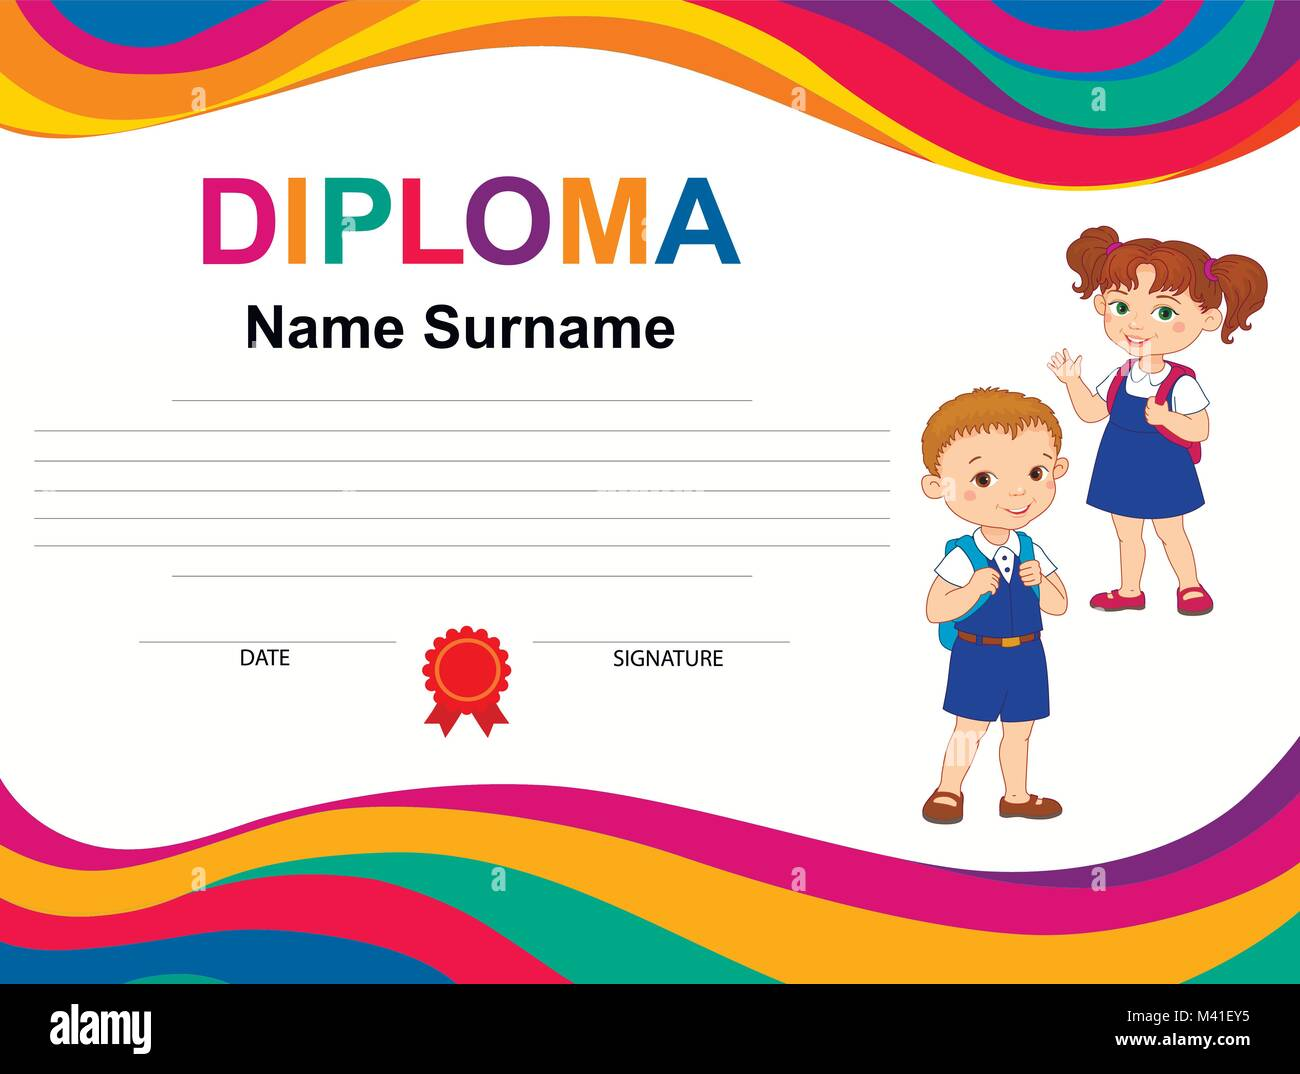 Kids Diploma Certificate Background Design Template Stock